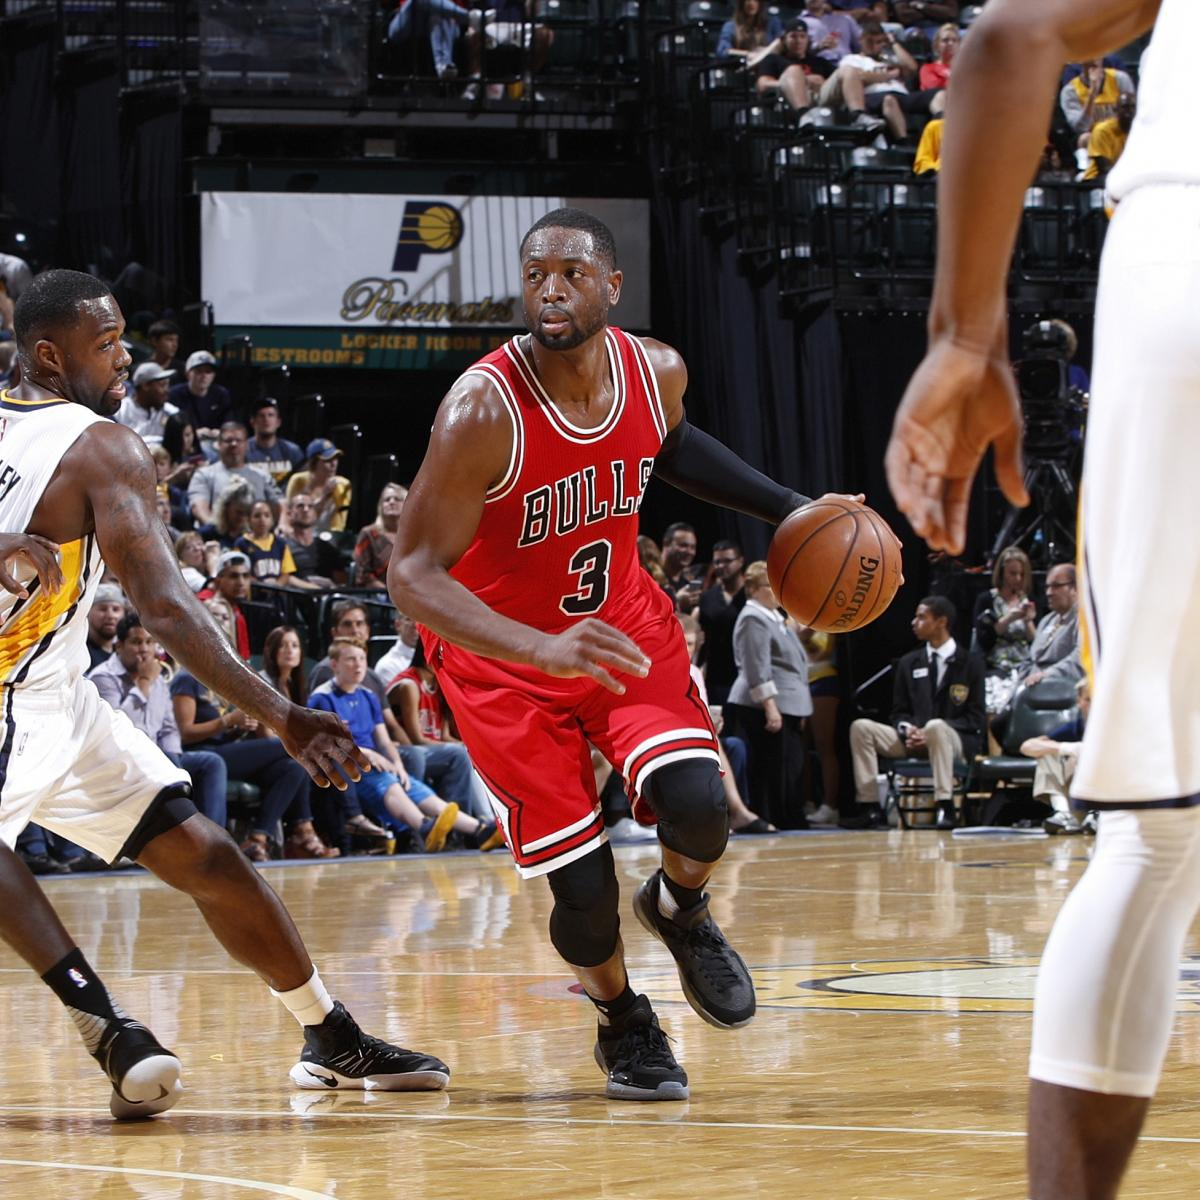 Dwyane Wade Workout: Mixed Messages, Mismatched Pieces Could Leave Bulls Lost